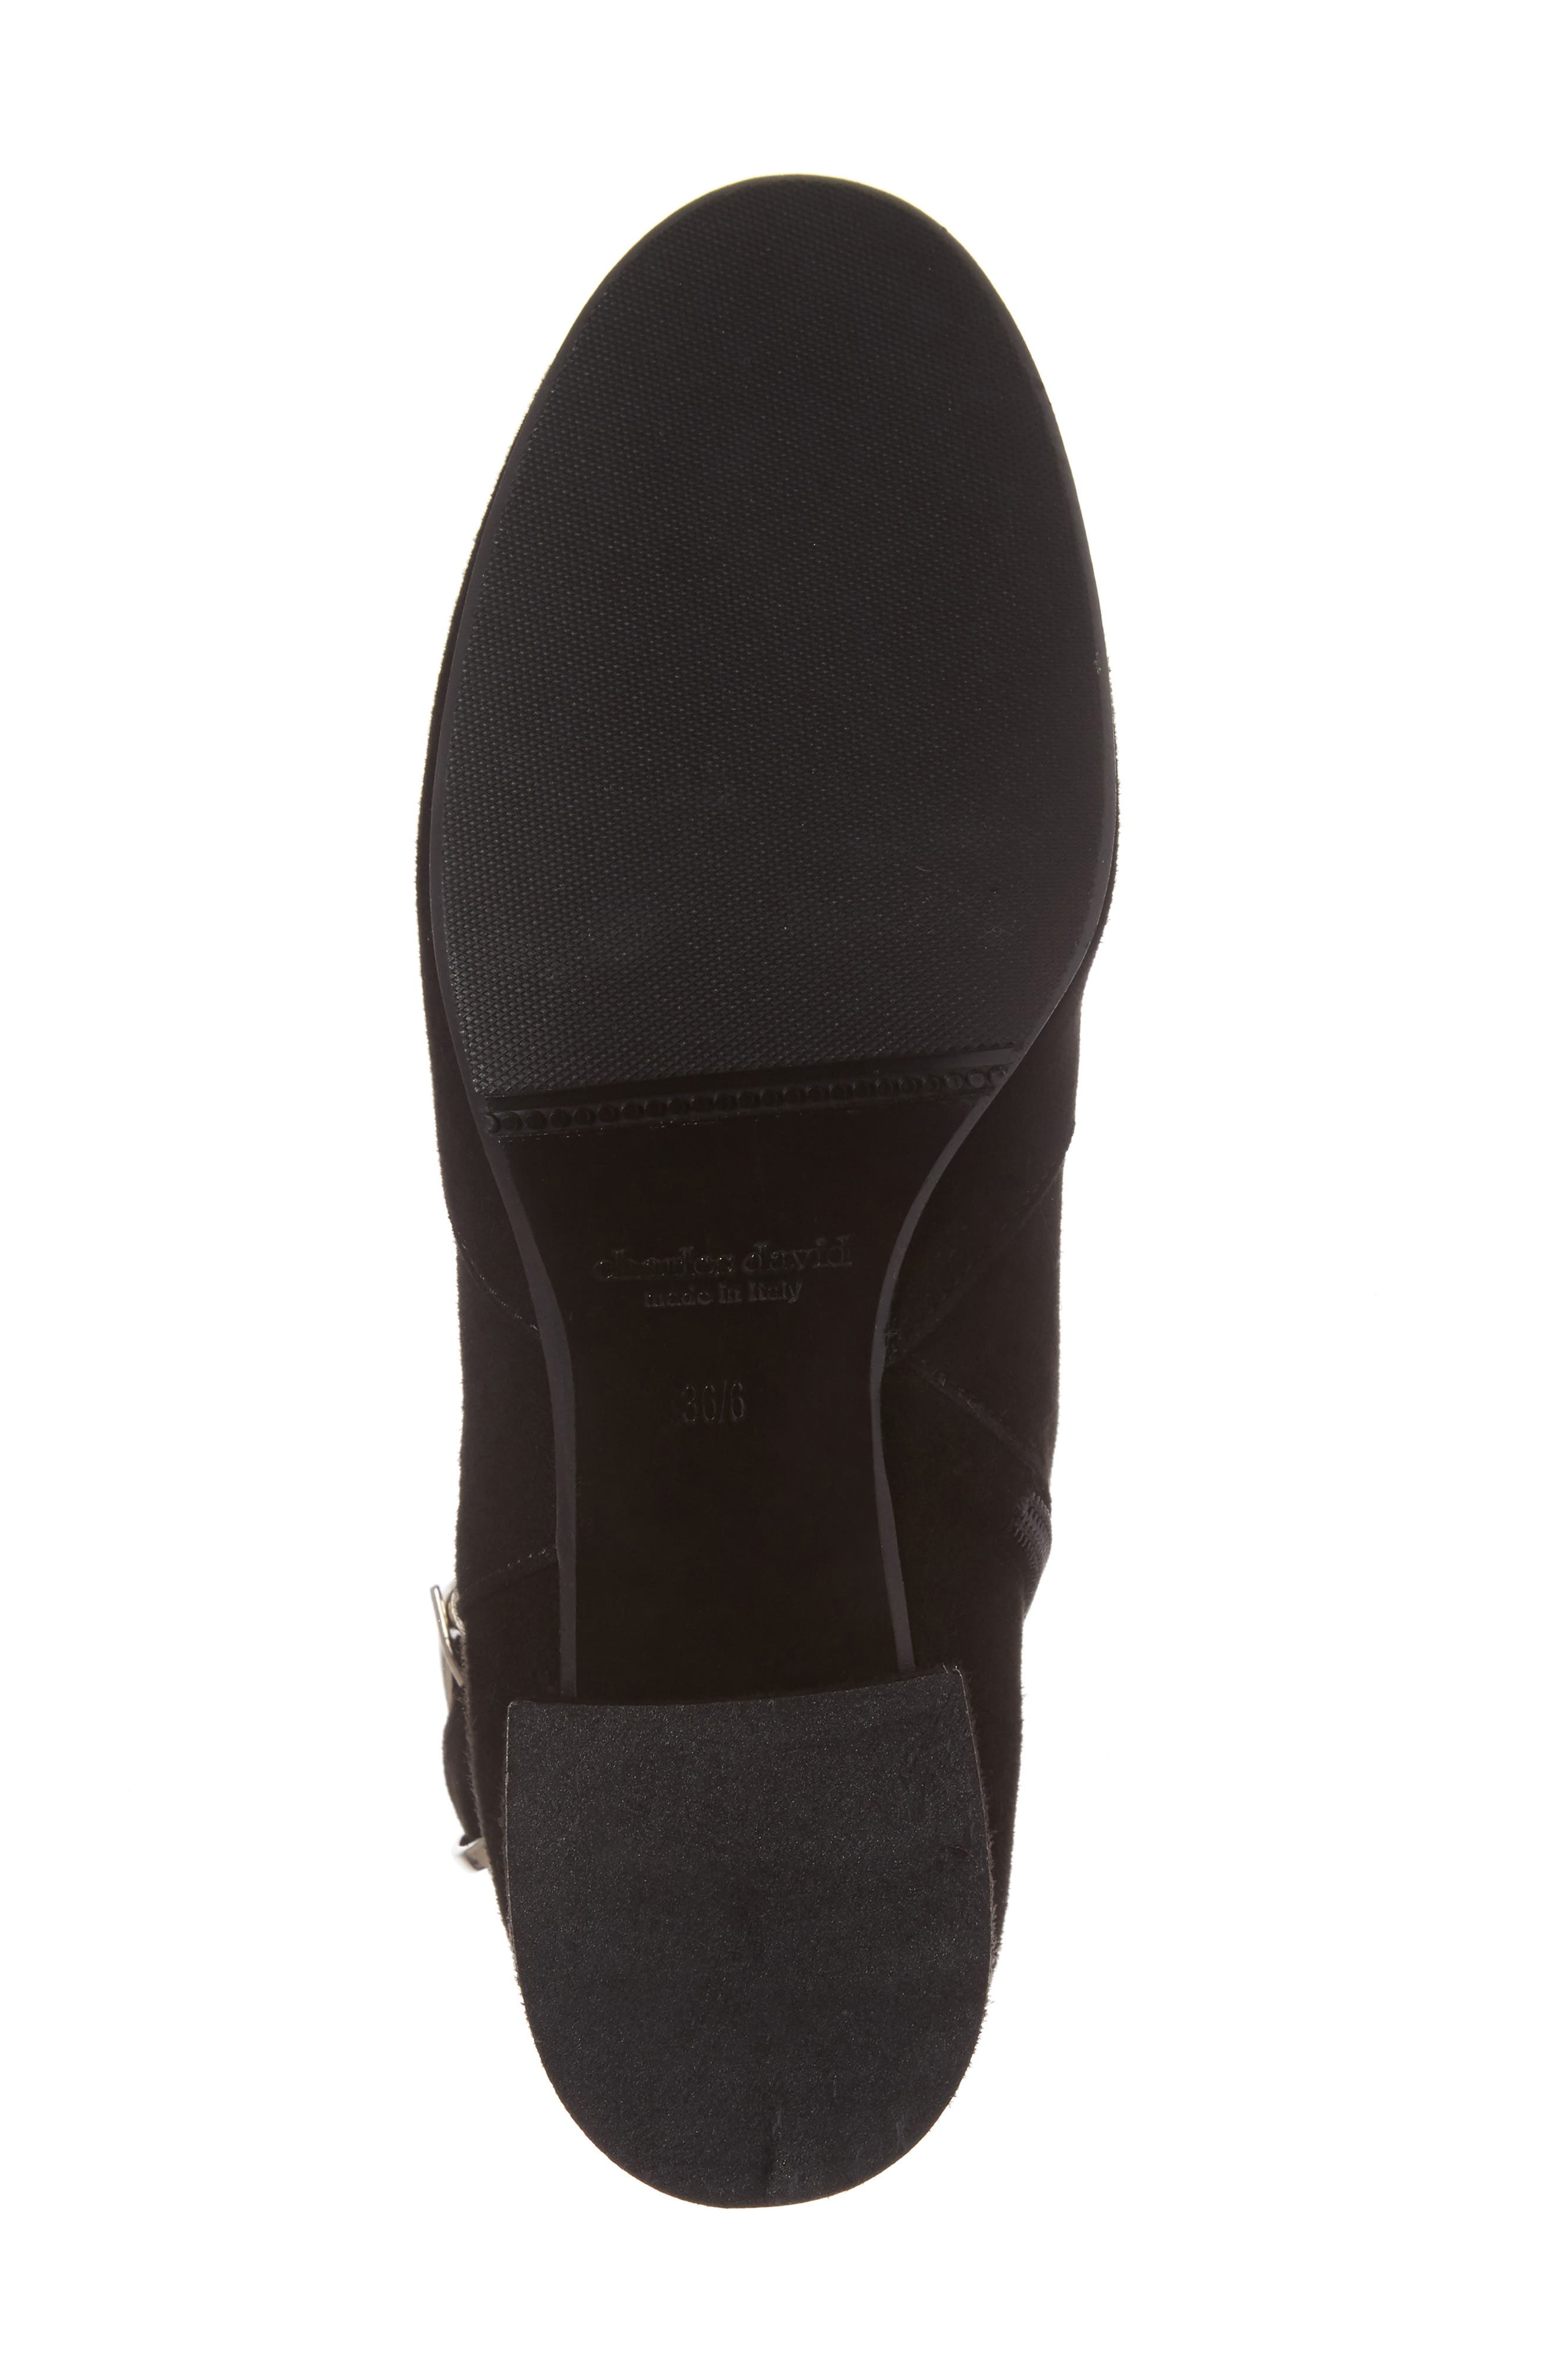 Maddie Buckle Strap Bootie,                             Alternate thumbnail 6, color,                             001